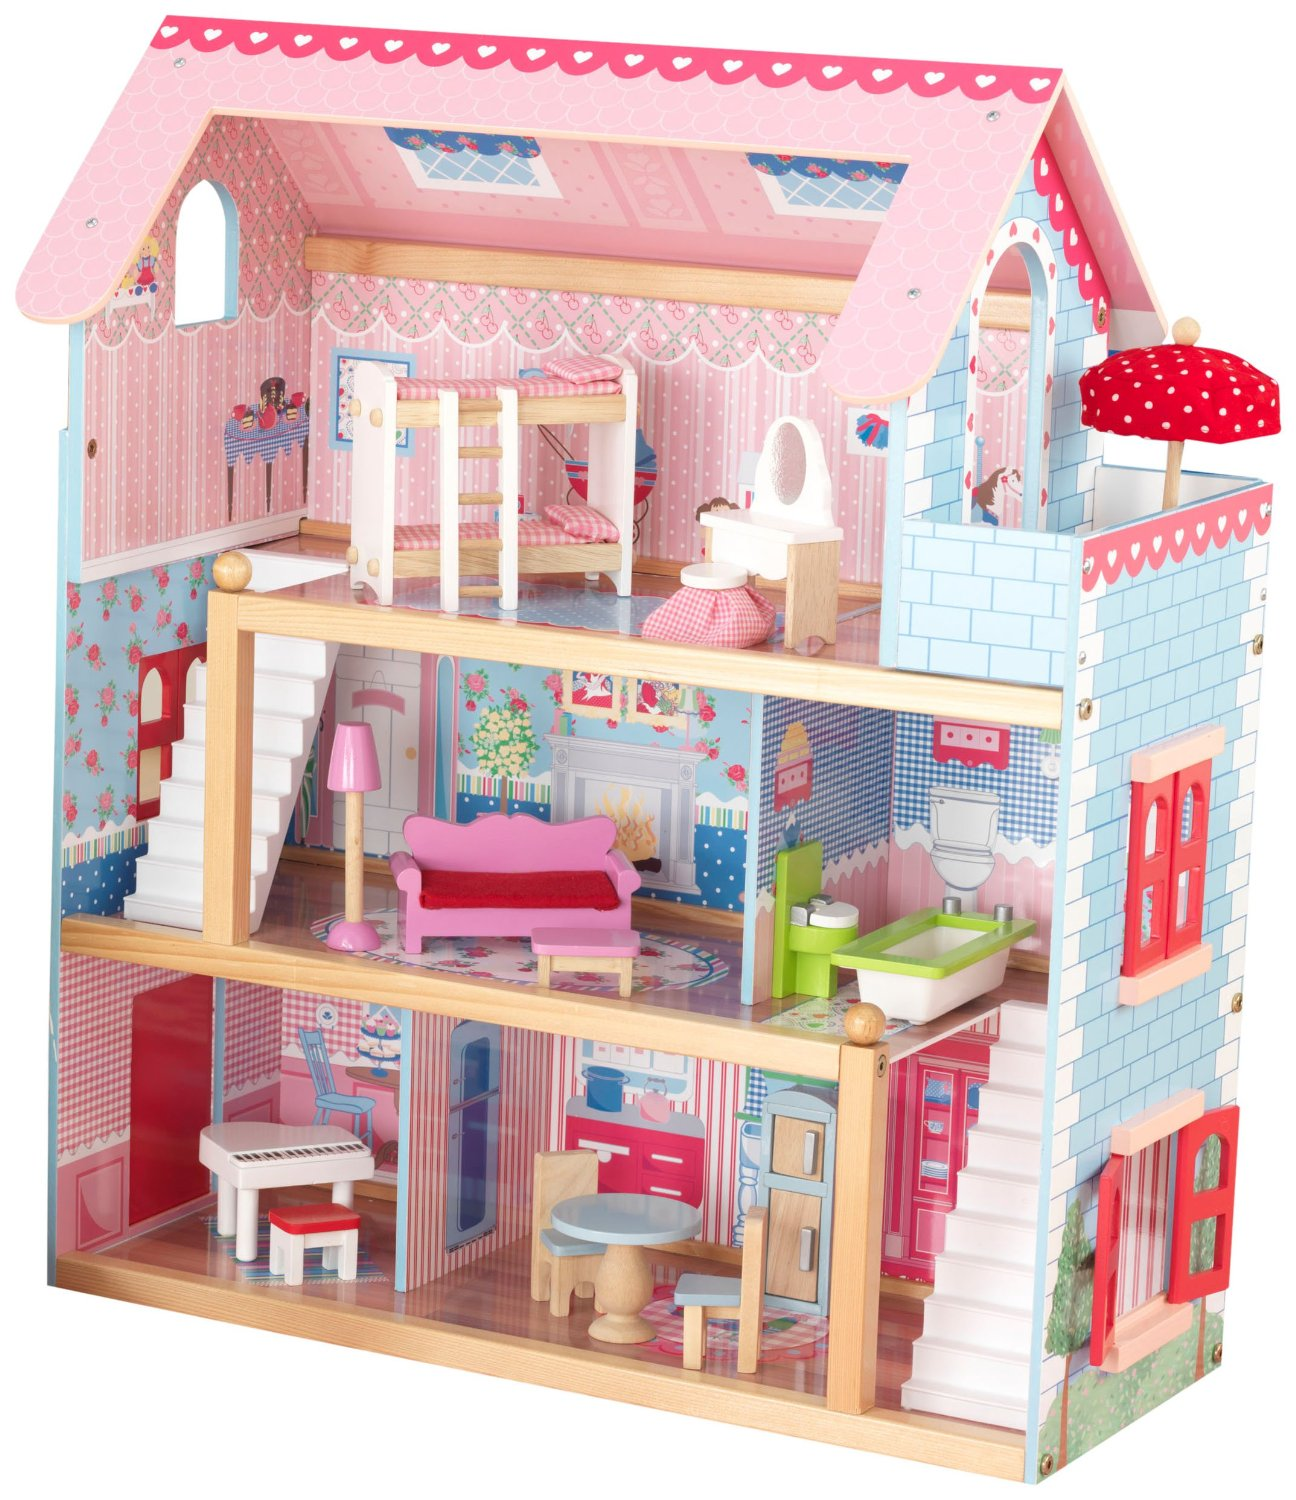 Fisher price doll house furniture - The Whimsical World Of Fisher Price Doll House Furniture